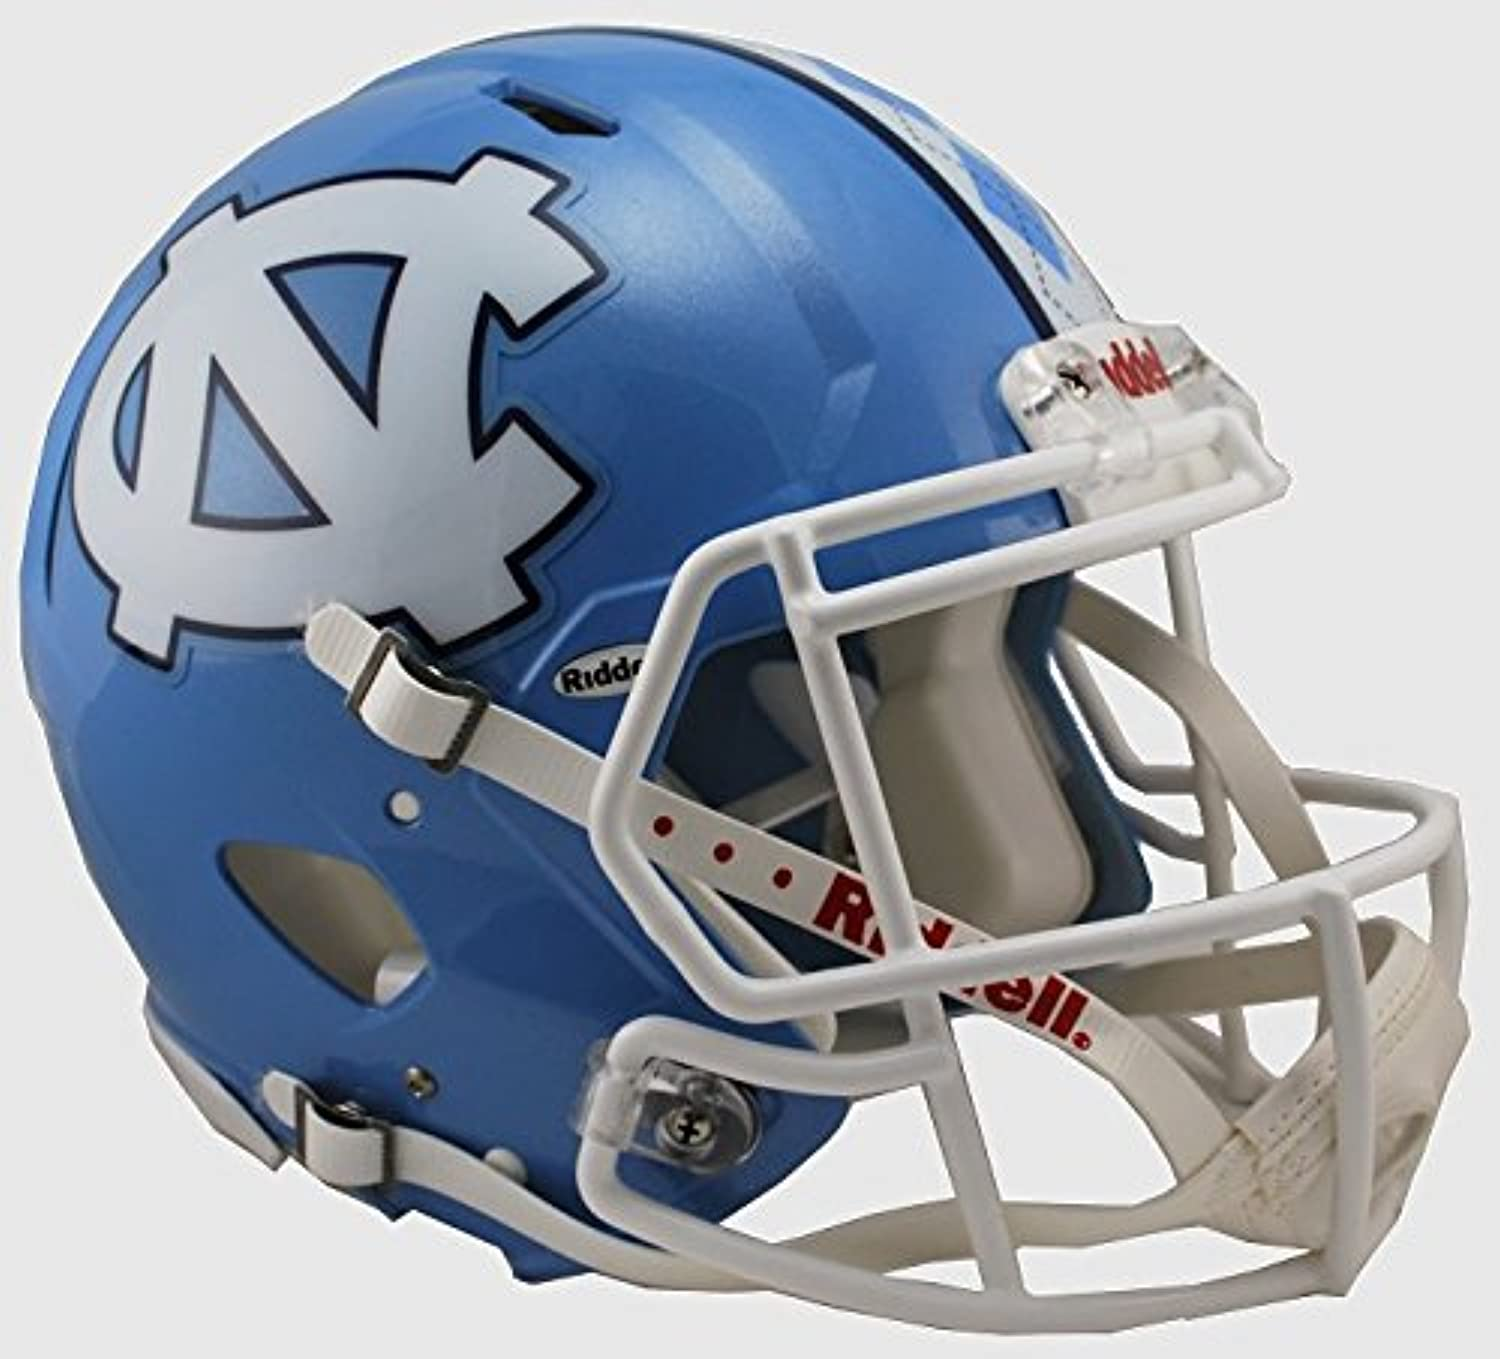 North Carolina Tar Heels Speed Football Helmet B NEW 2015 B